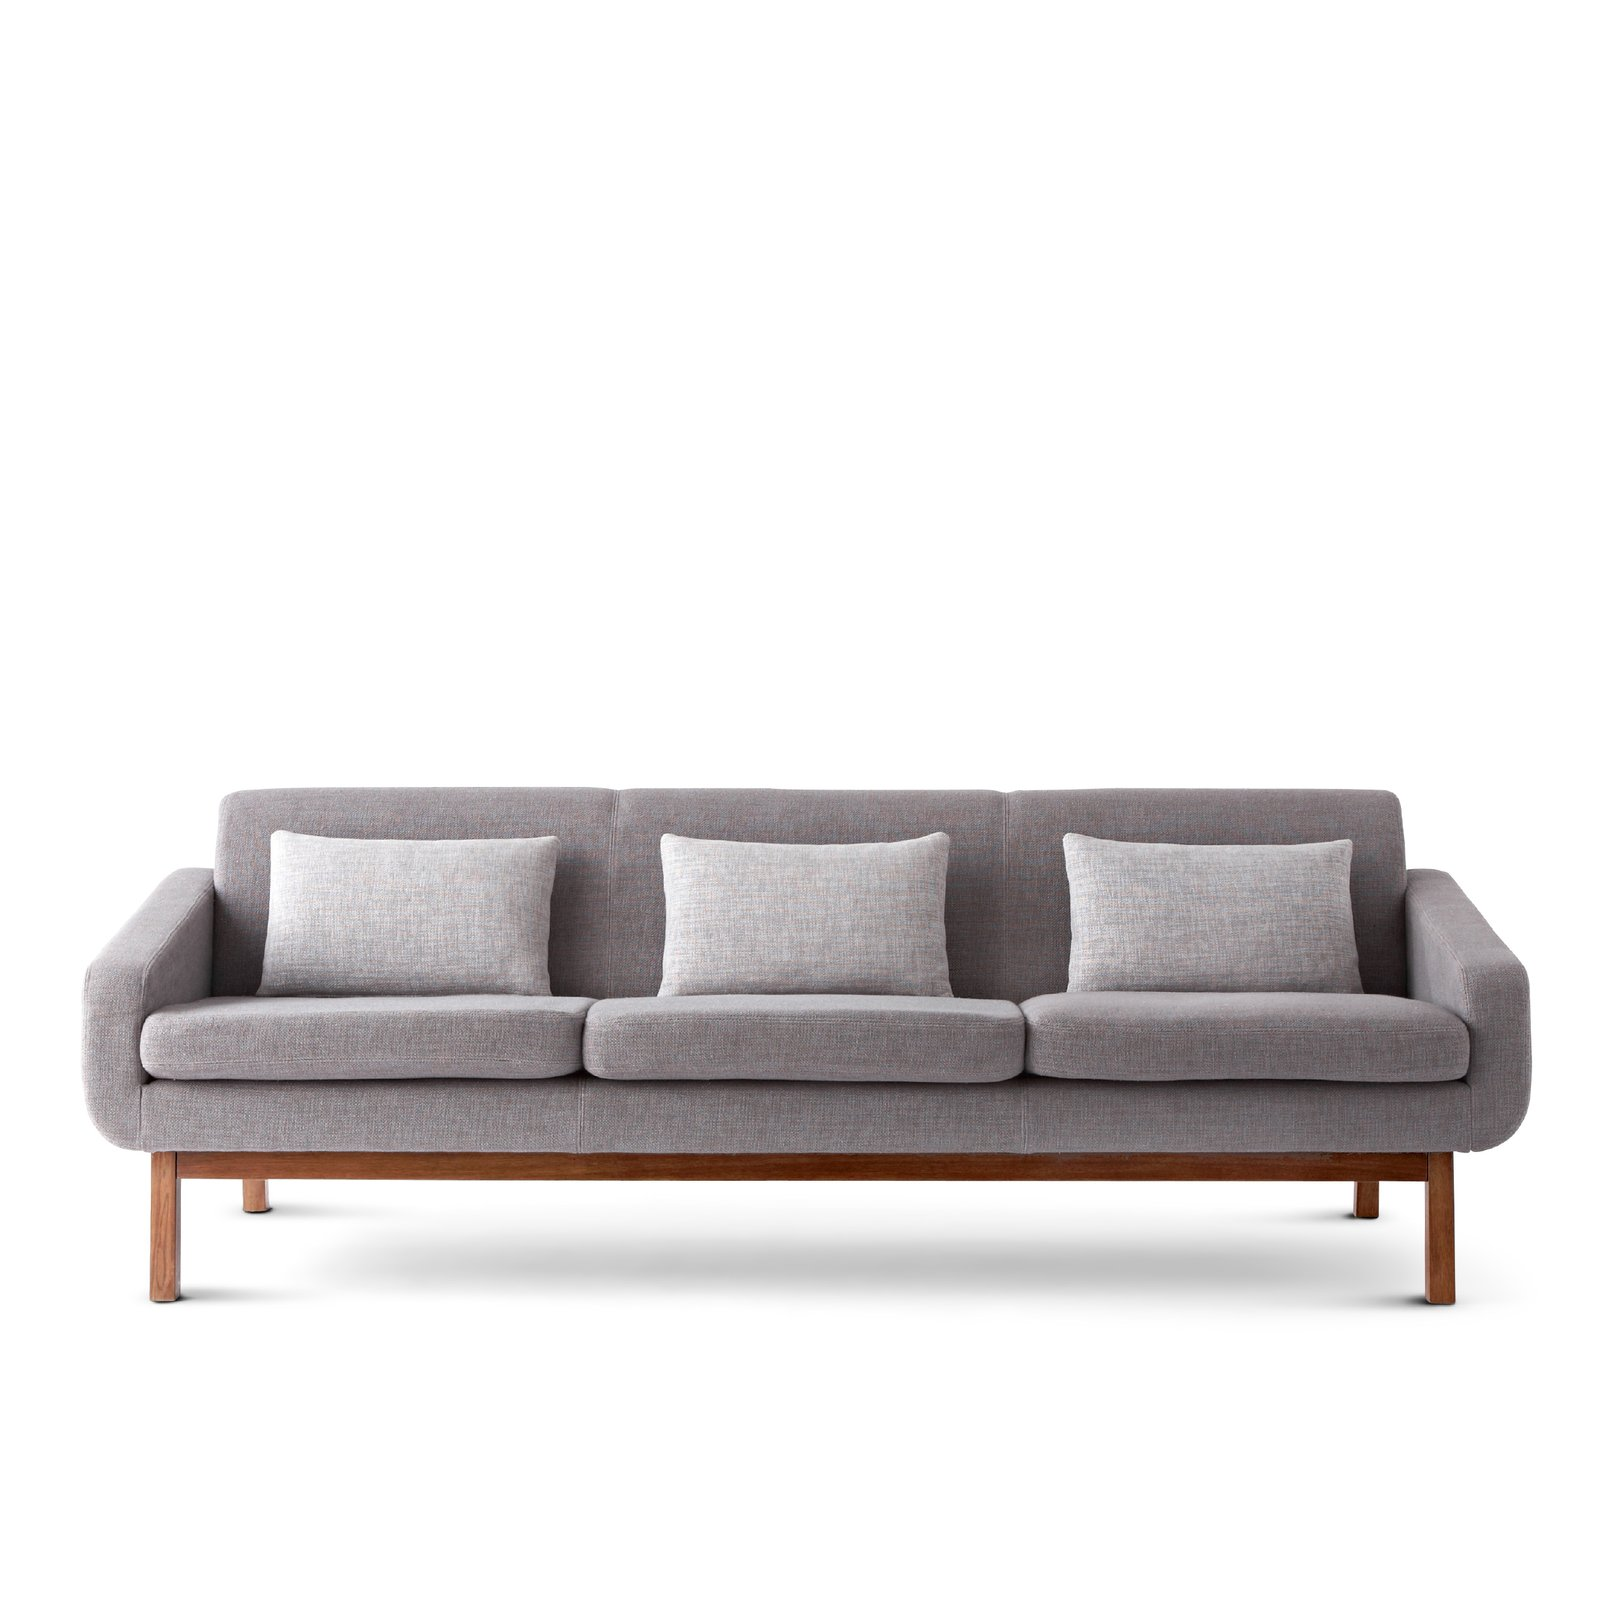 "Happy Chic by Jonathan Adler Bleecker 80"" Sofa  This angular sofa has a sturdy, kiln-dried hardwood frame covered in a deep-gray herringbone fabric.  New Home Collection at JcPenney by Kristen W. Terry"